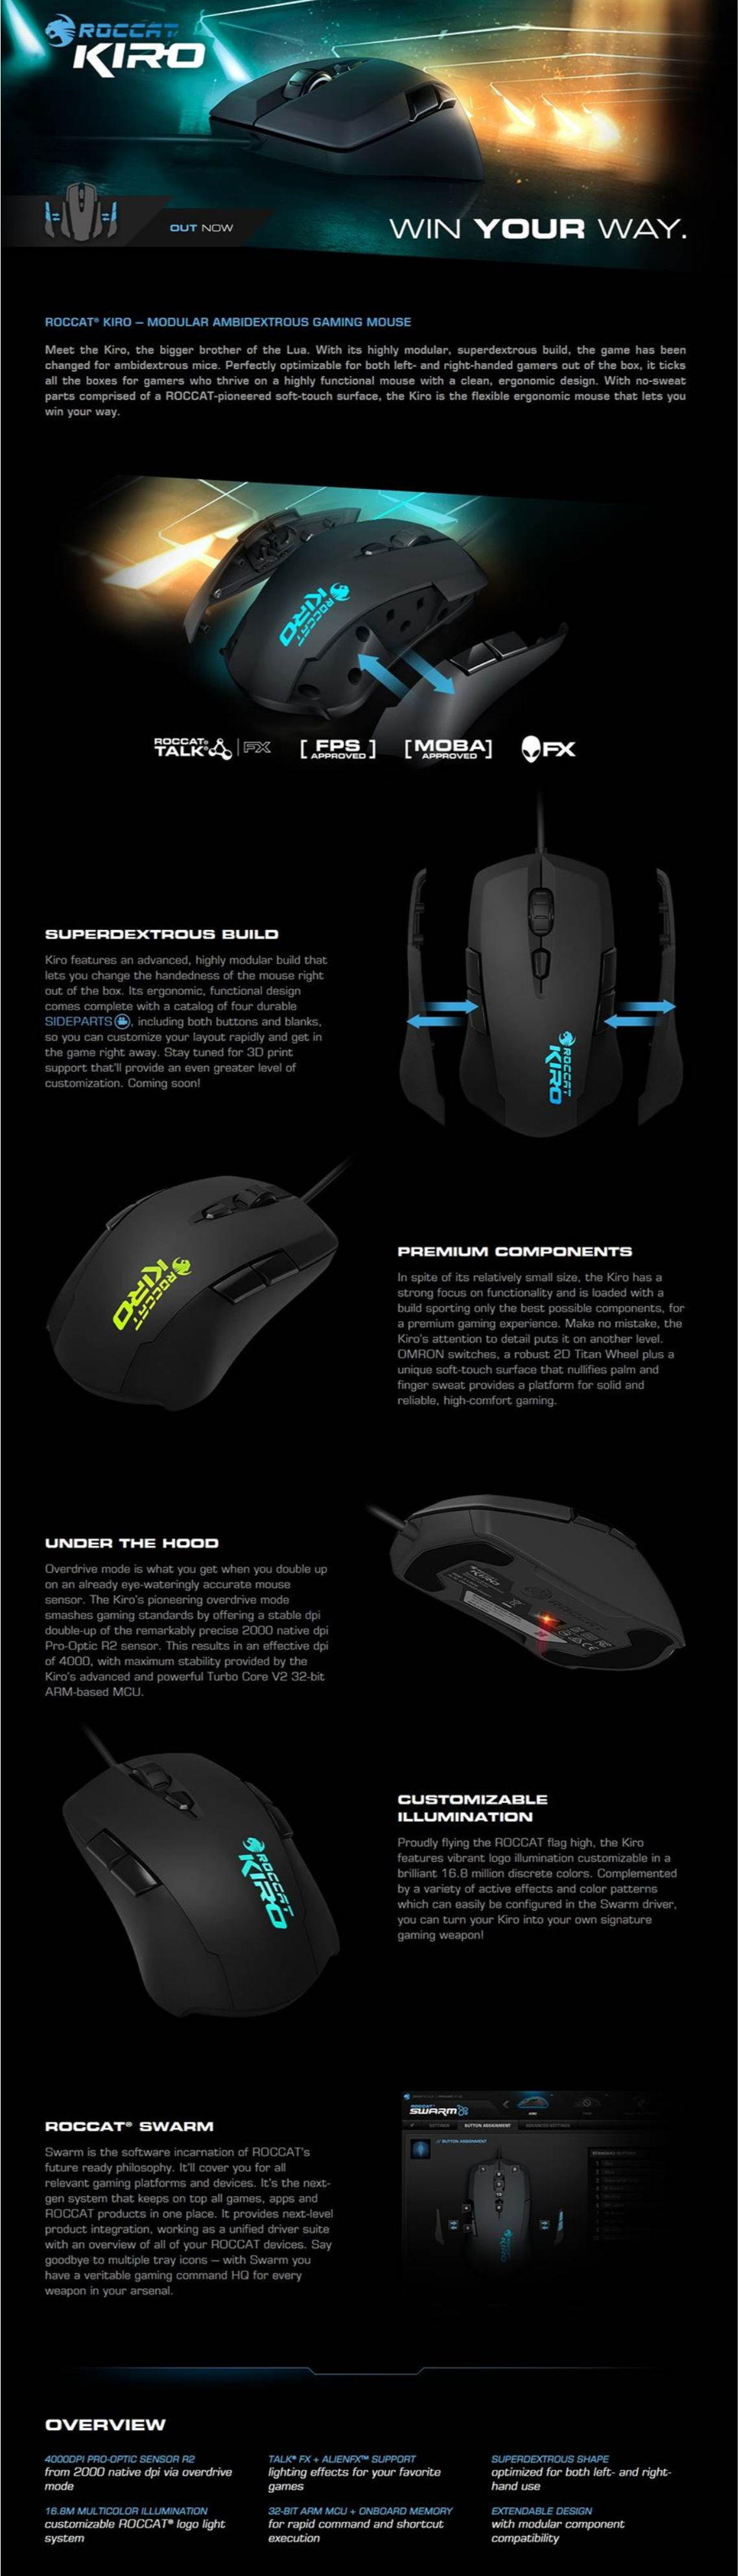 Roccat Kiro Modular Ambidextrous Gaming Mouse for Both Left- and Right-hand Use